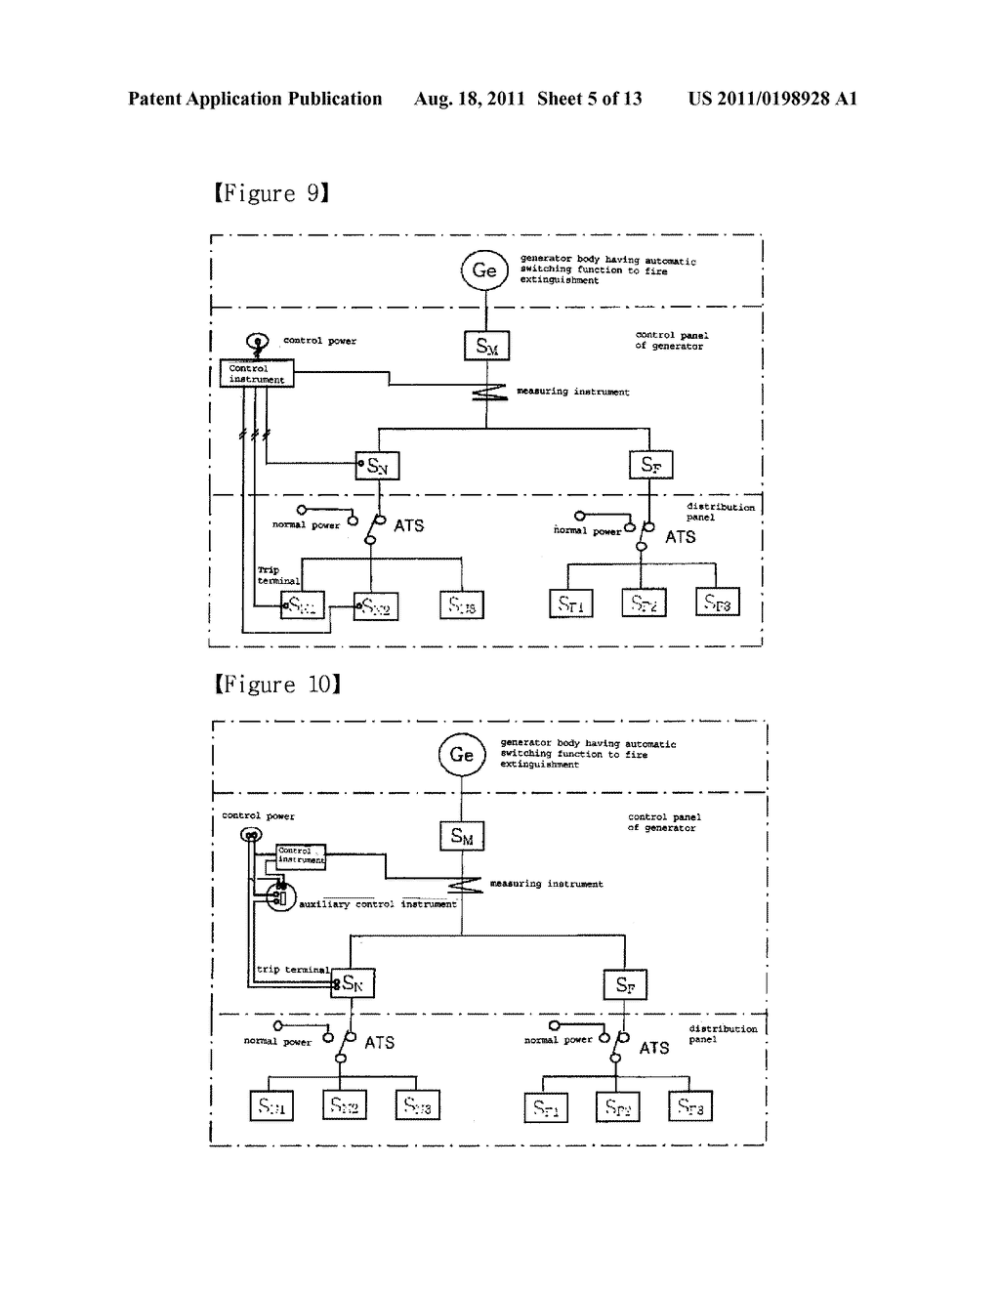 medium resolution of emergency generator power system with reserved fire protection power diagram schematic and image 06